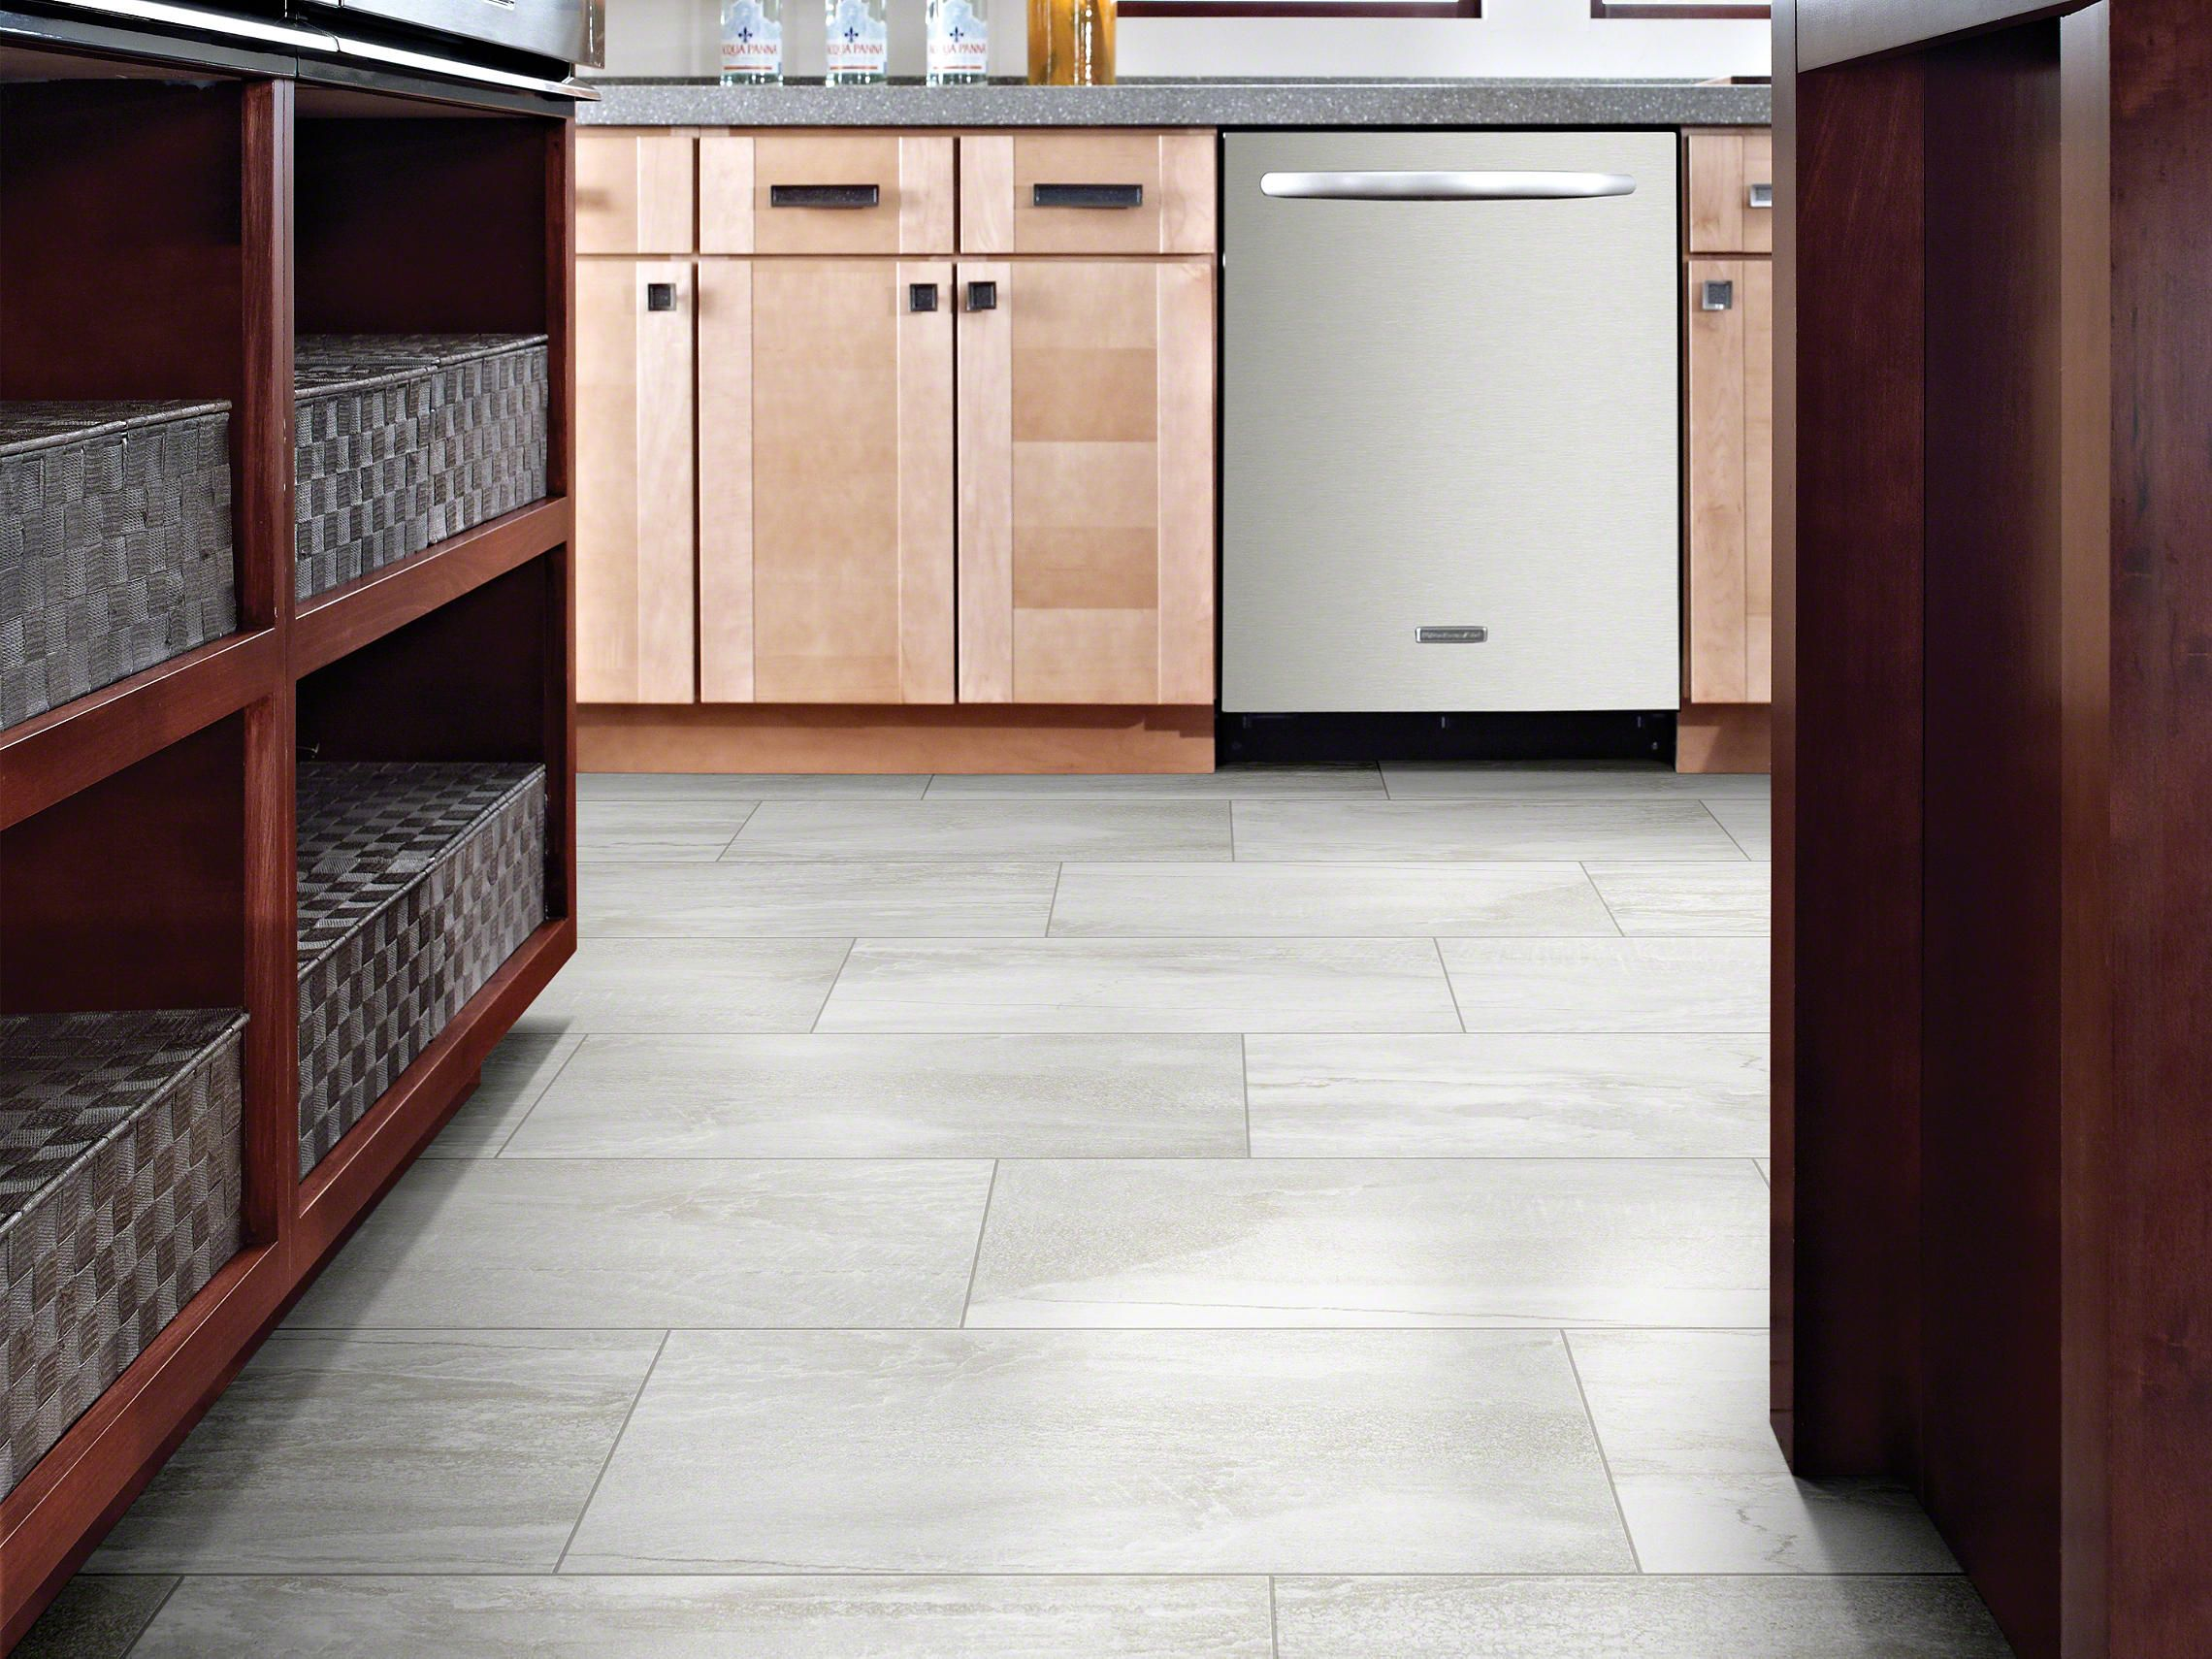 Fossil 12x24 room view shawfossil 163 trace 12x24 tile cs56l shaws fossil trace tile and stone for flooring and wall projects from backsplashes to fireplaces wide variety of tile flooring and wall tile colors dailygadgetfo Gallery